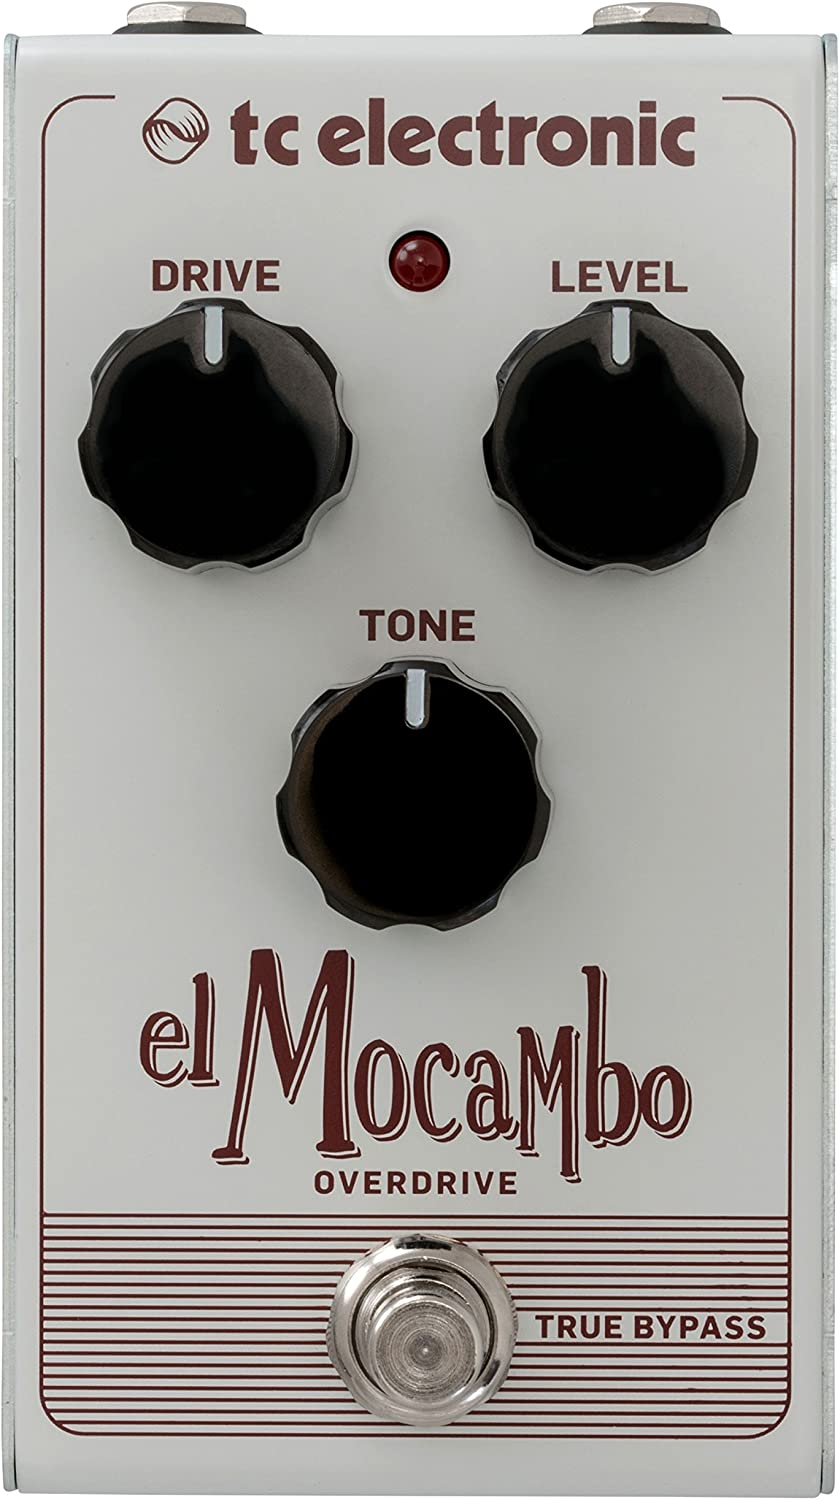 TC Electronic Electric Guitar Single Effect (EL MOCAMBO OVERDRIVE)